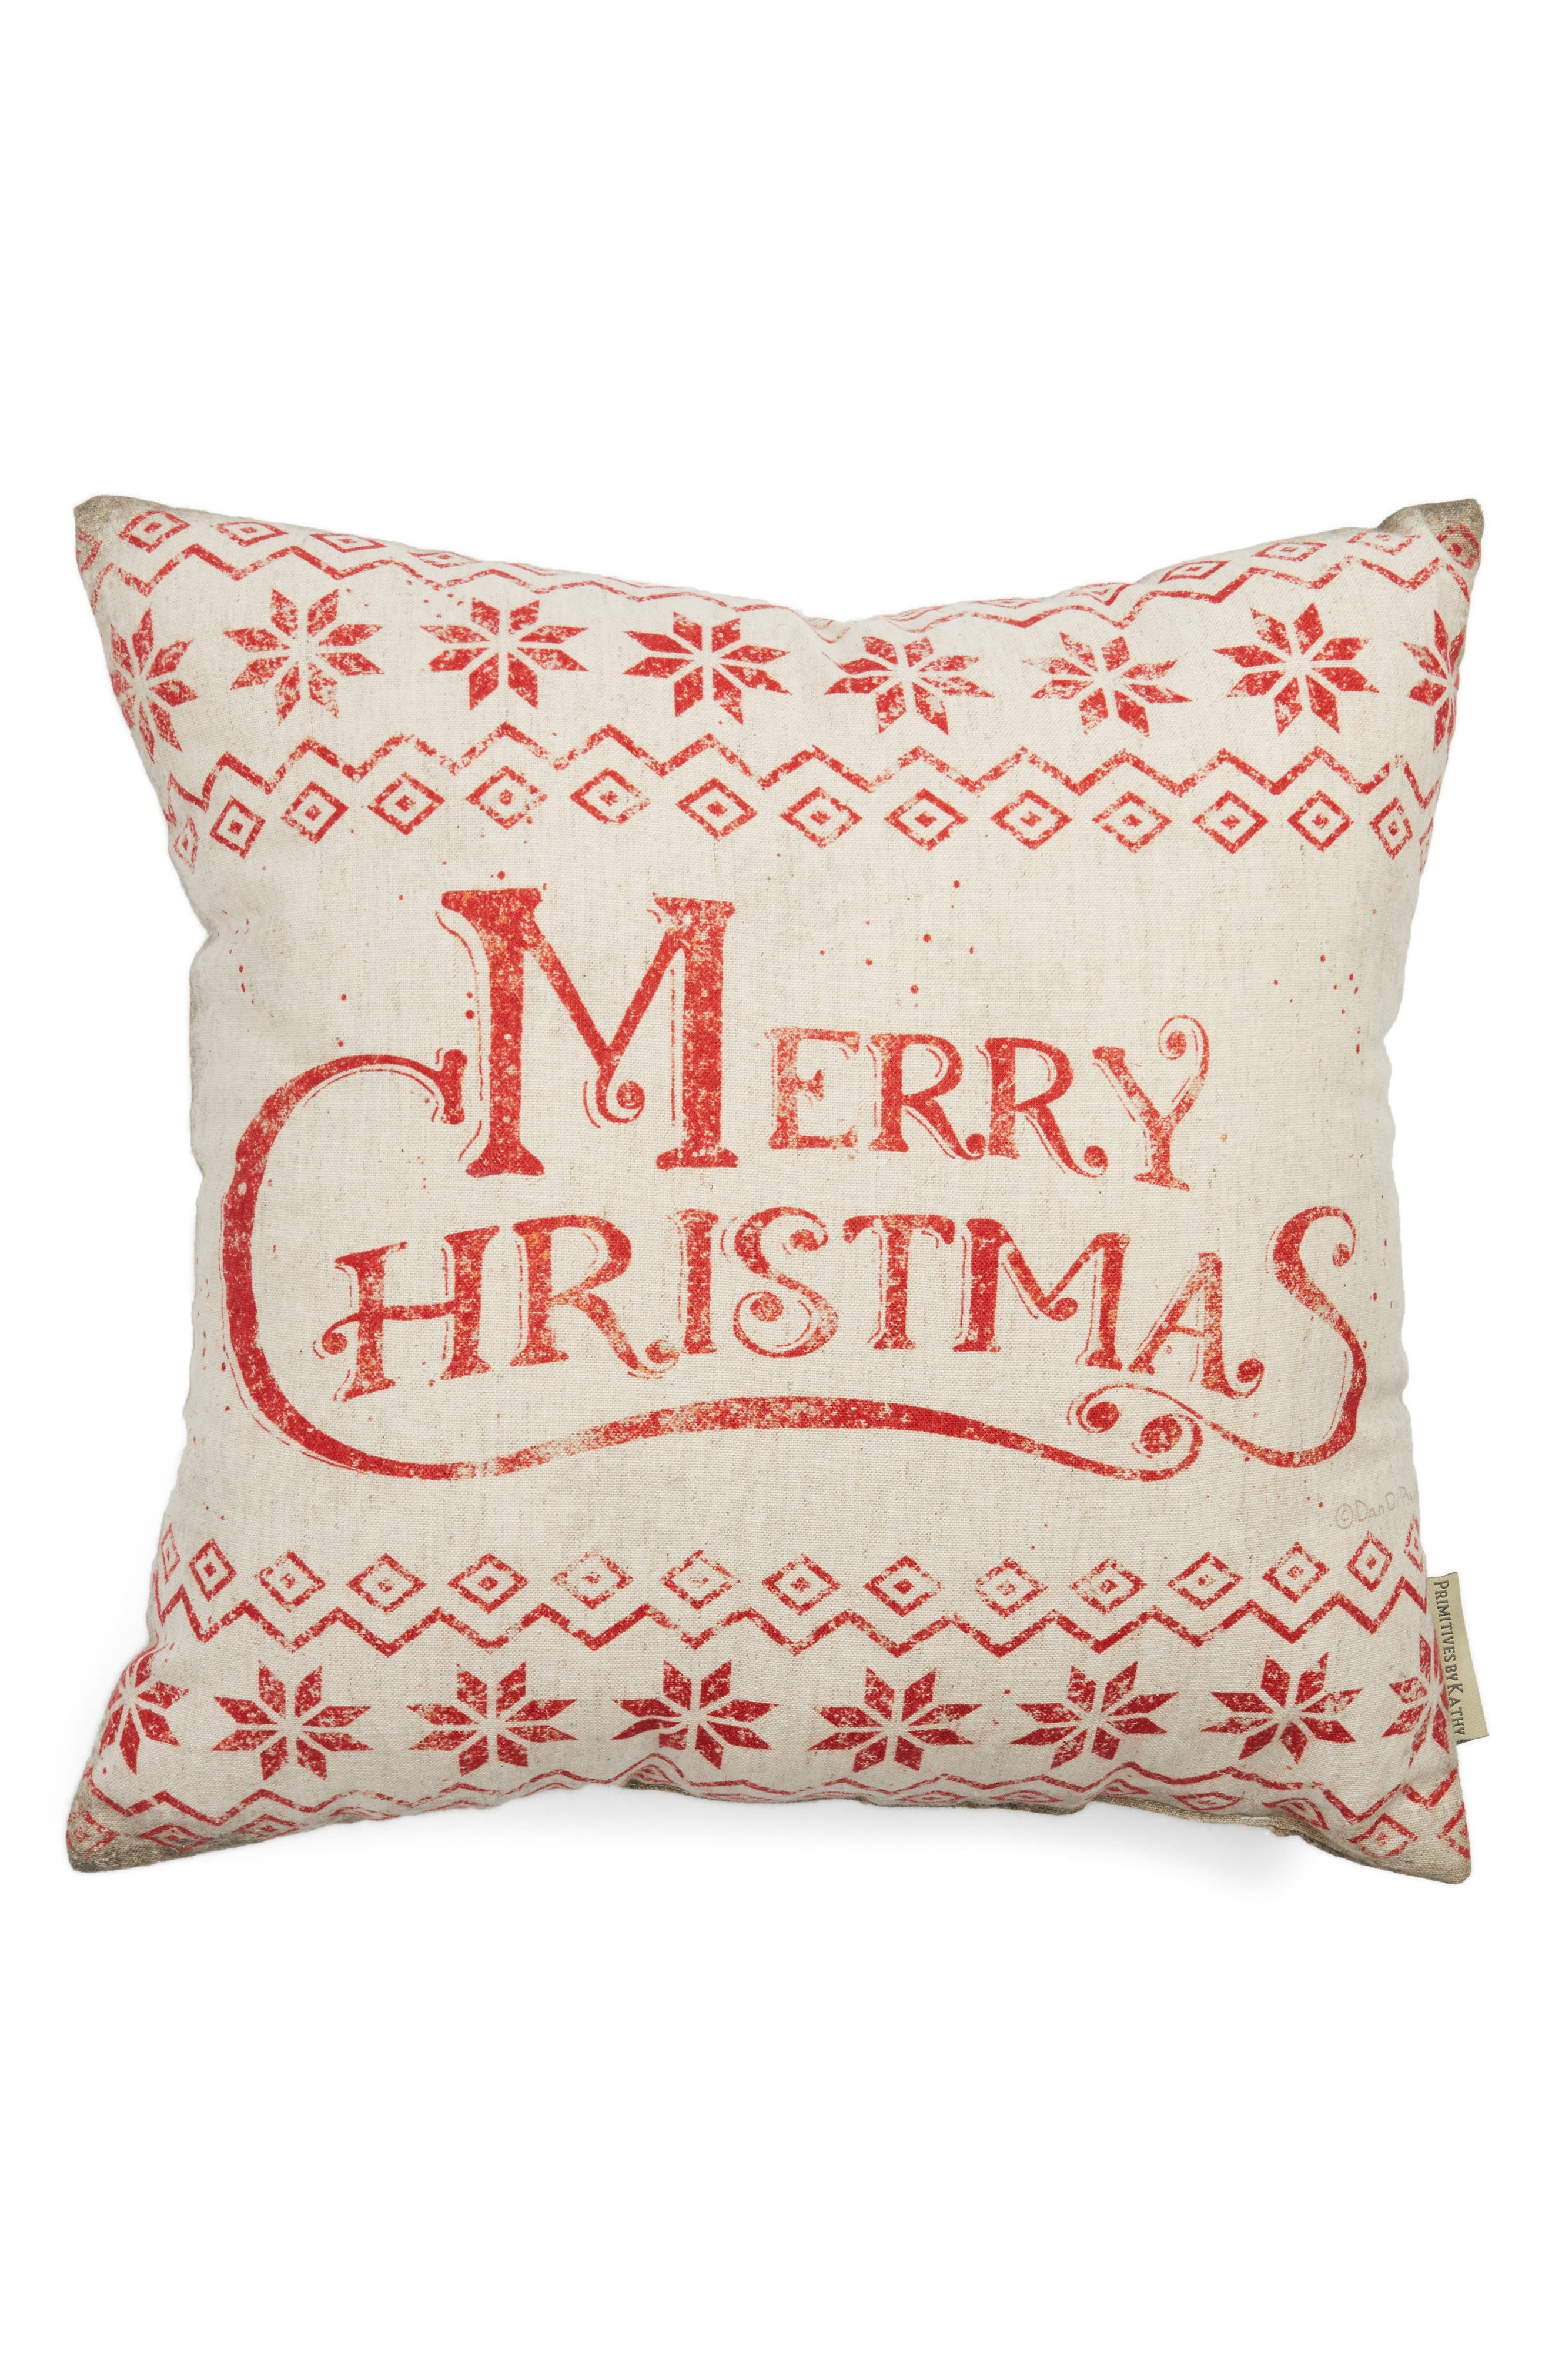 Merry Christmas Pillow,                             Alternate thumbnail 2, color,                             900